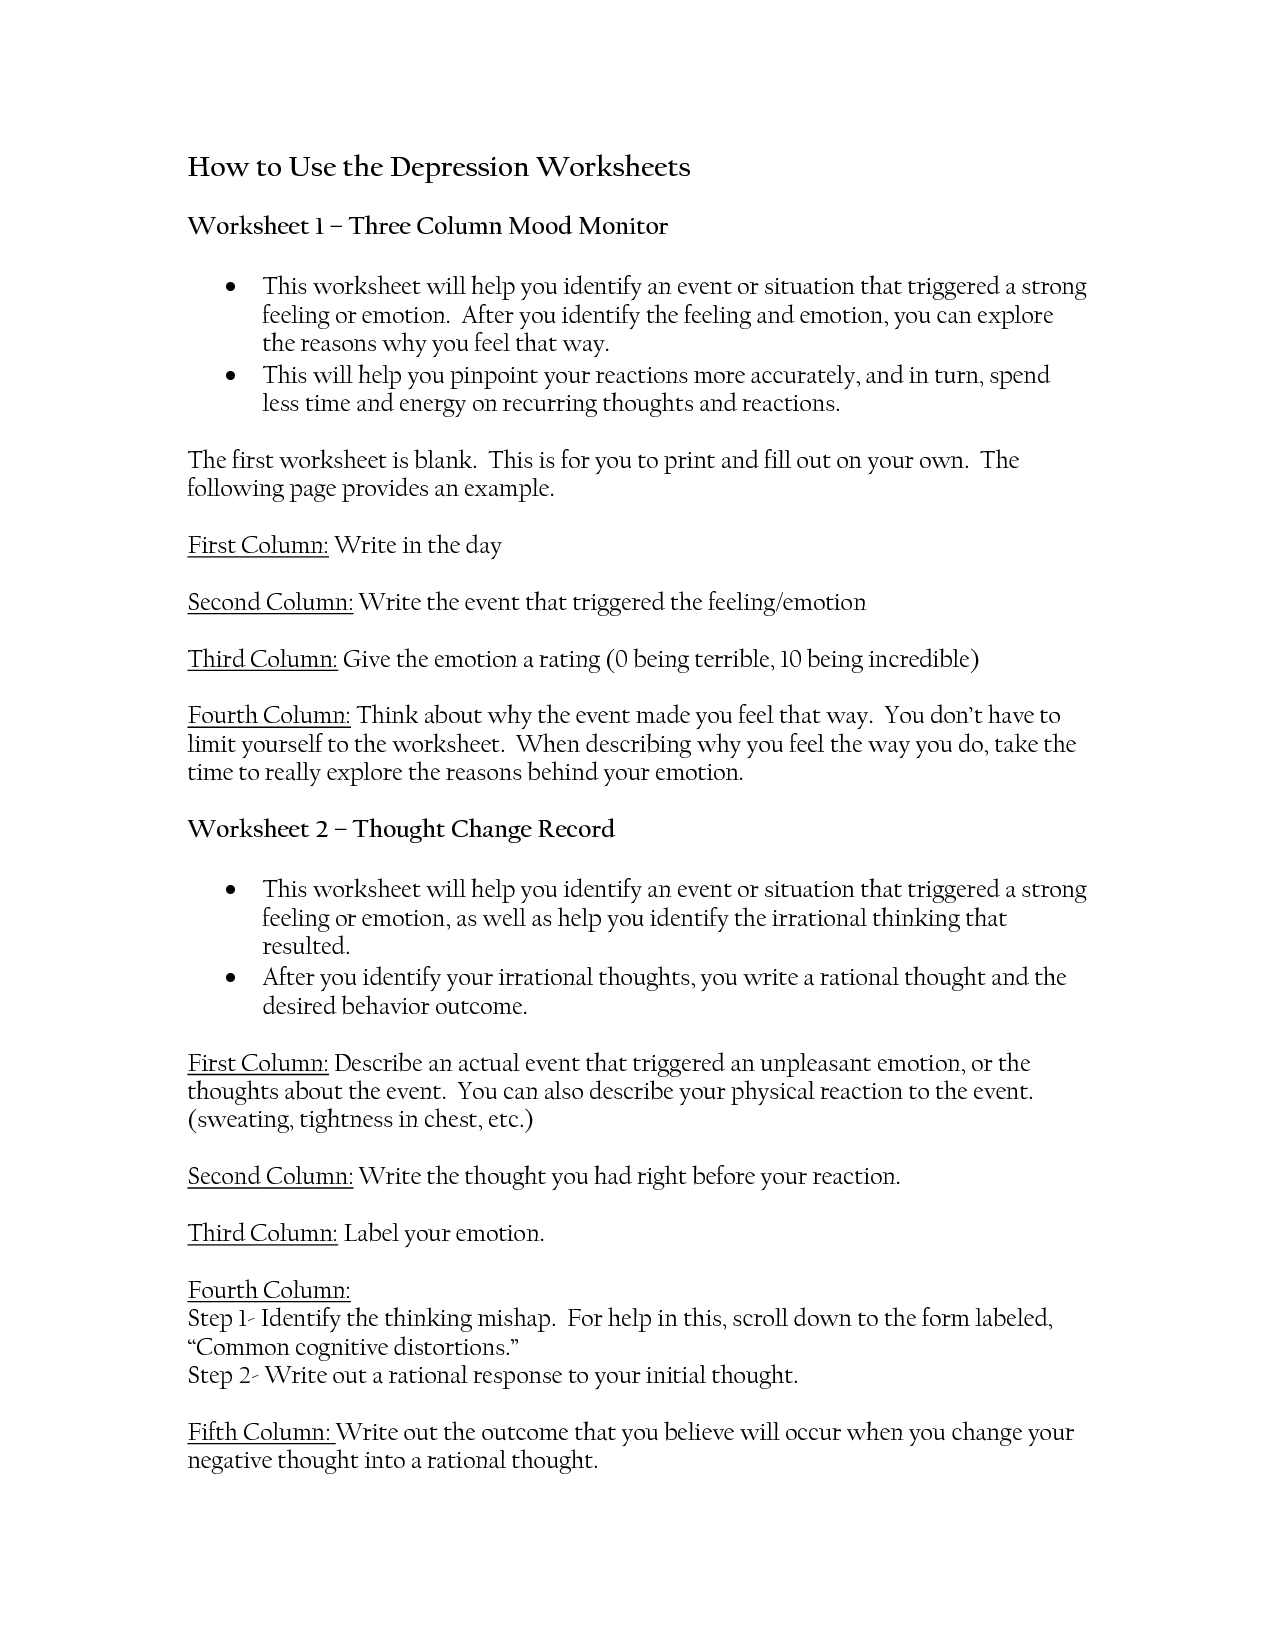 Depression Worksheets For Therapist